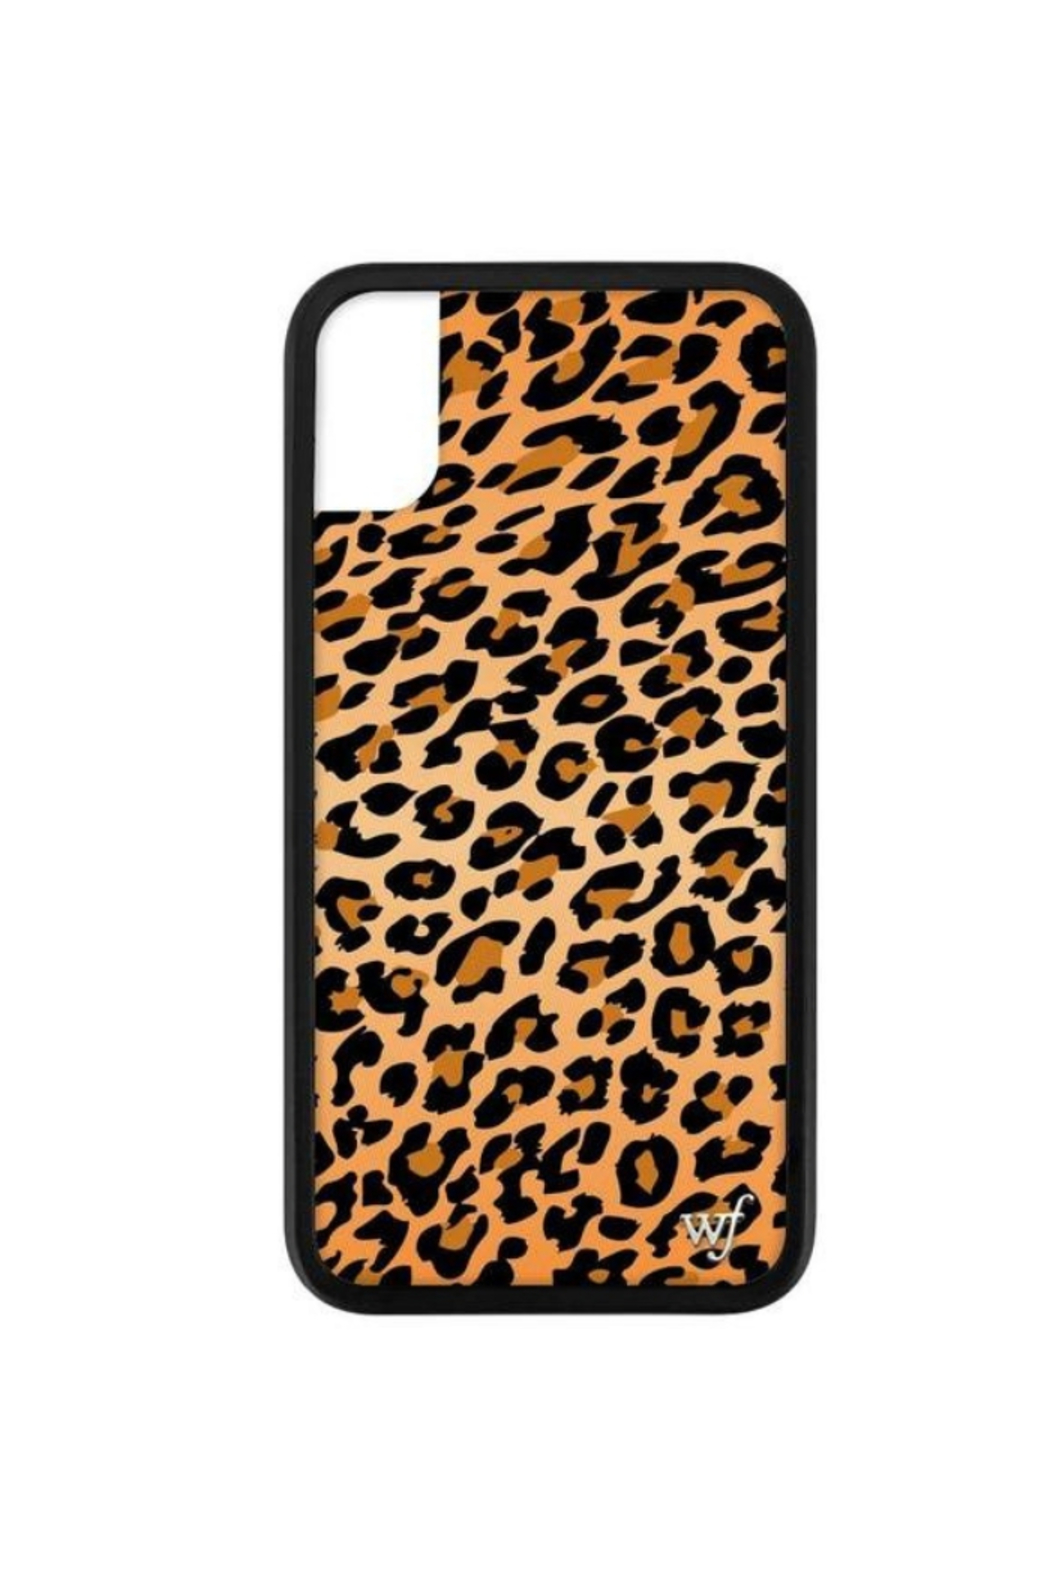 Wildflower Cases Leopard iPhone X Case - Main Image